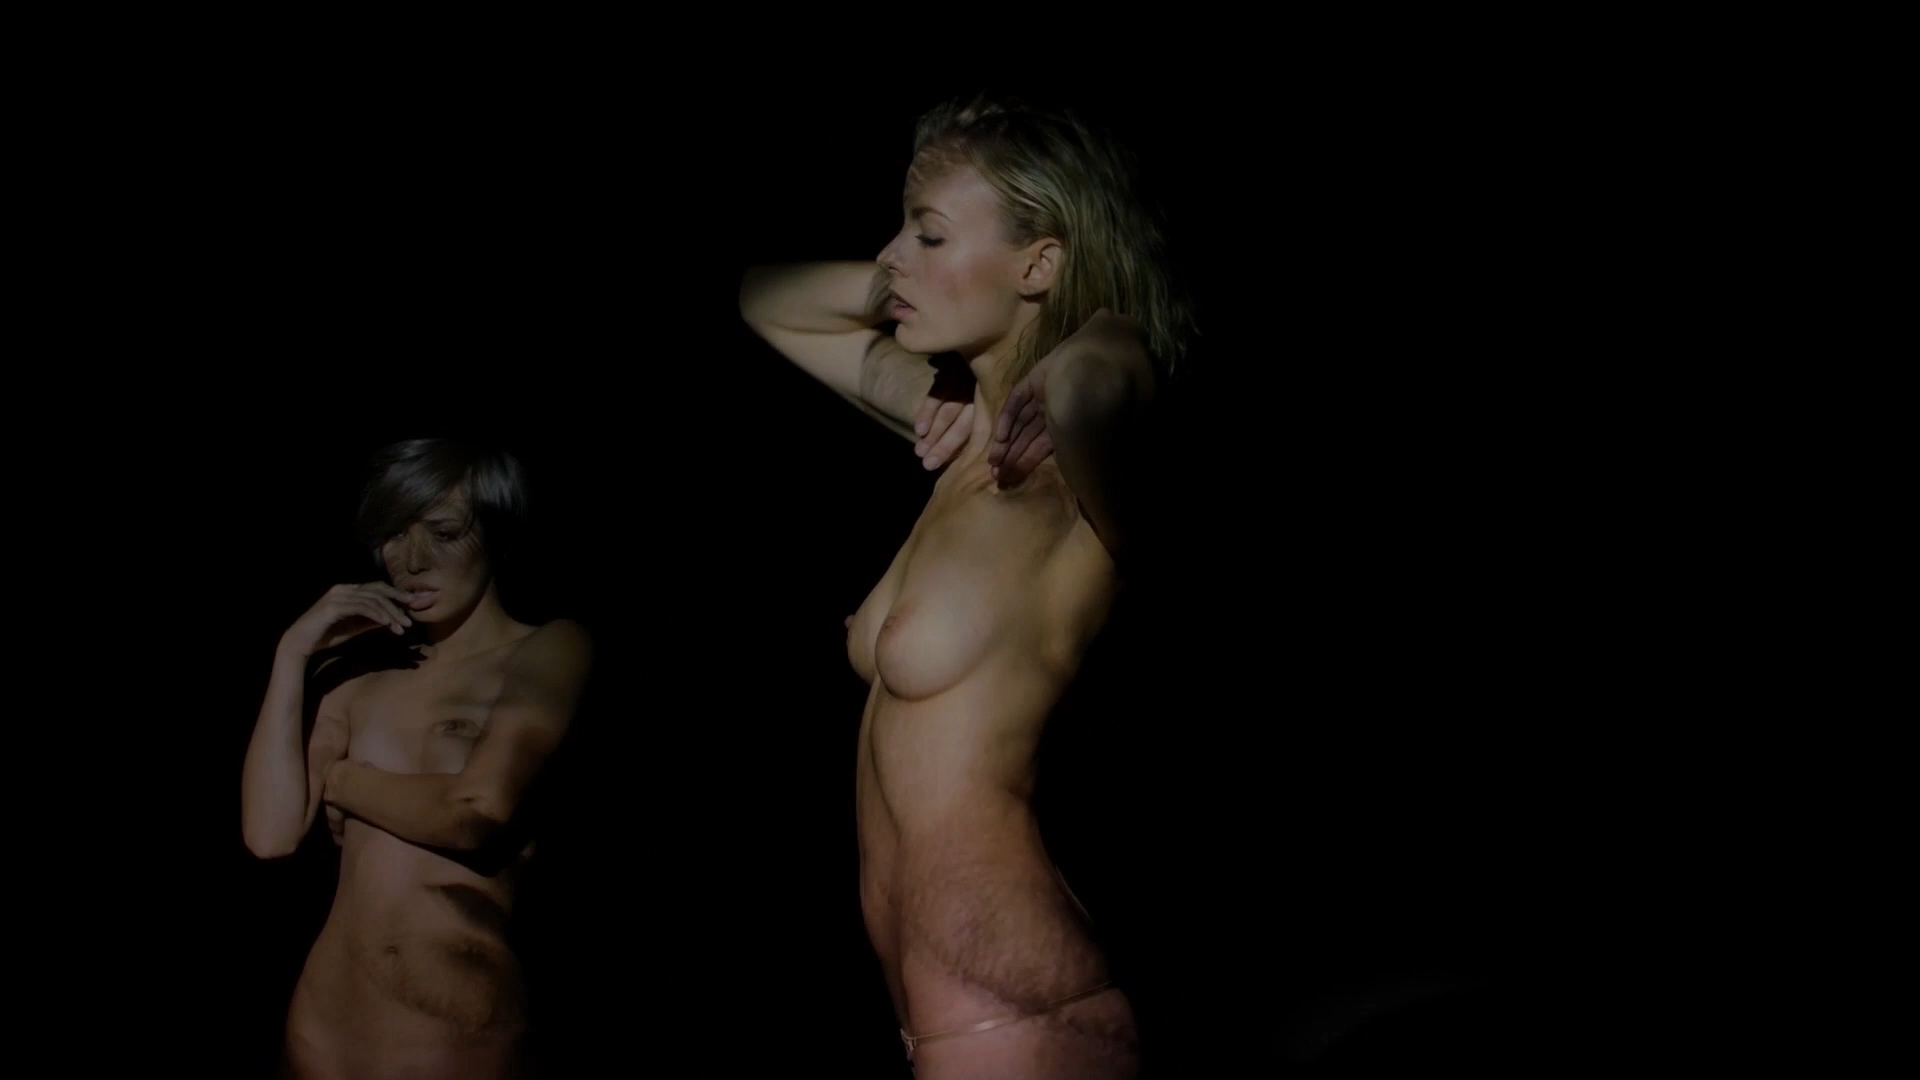 Felicia Porter nude topless and Laura Shields nude - Tunnel Vision (Explicit) - Justin Timberlake hd1080p (1)